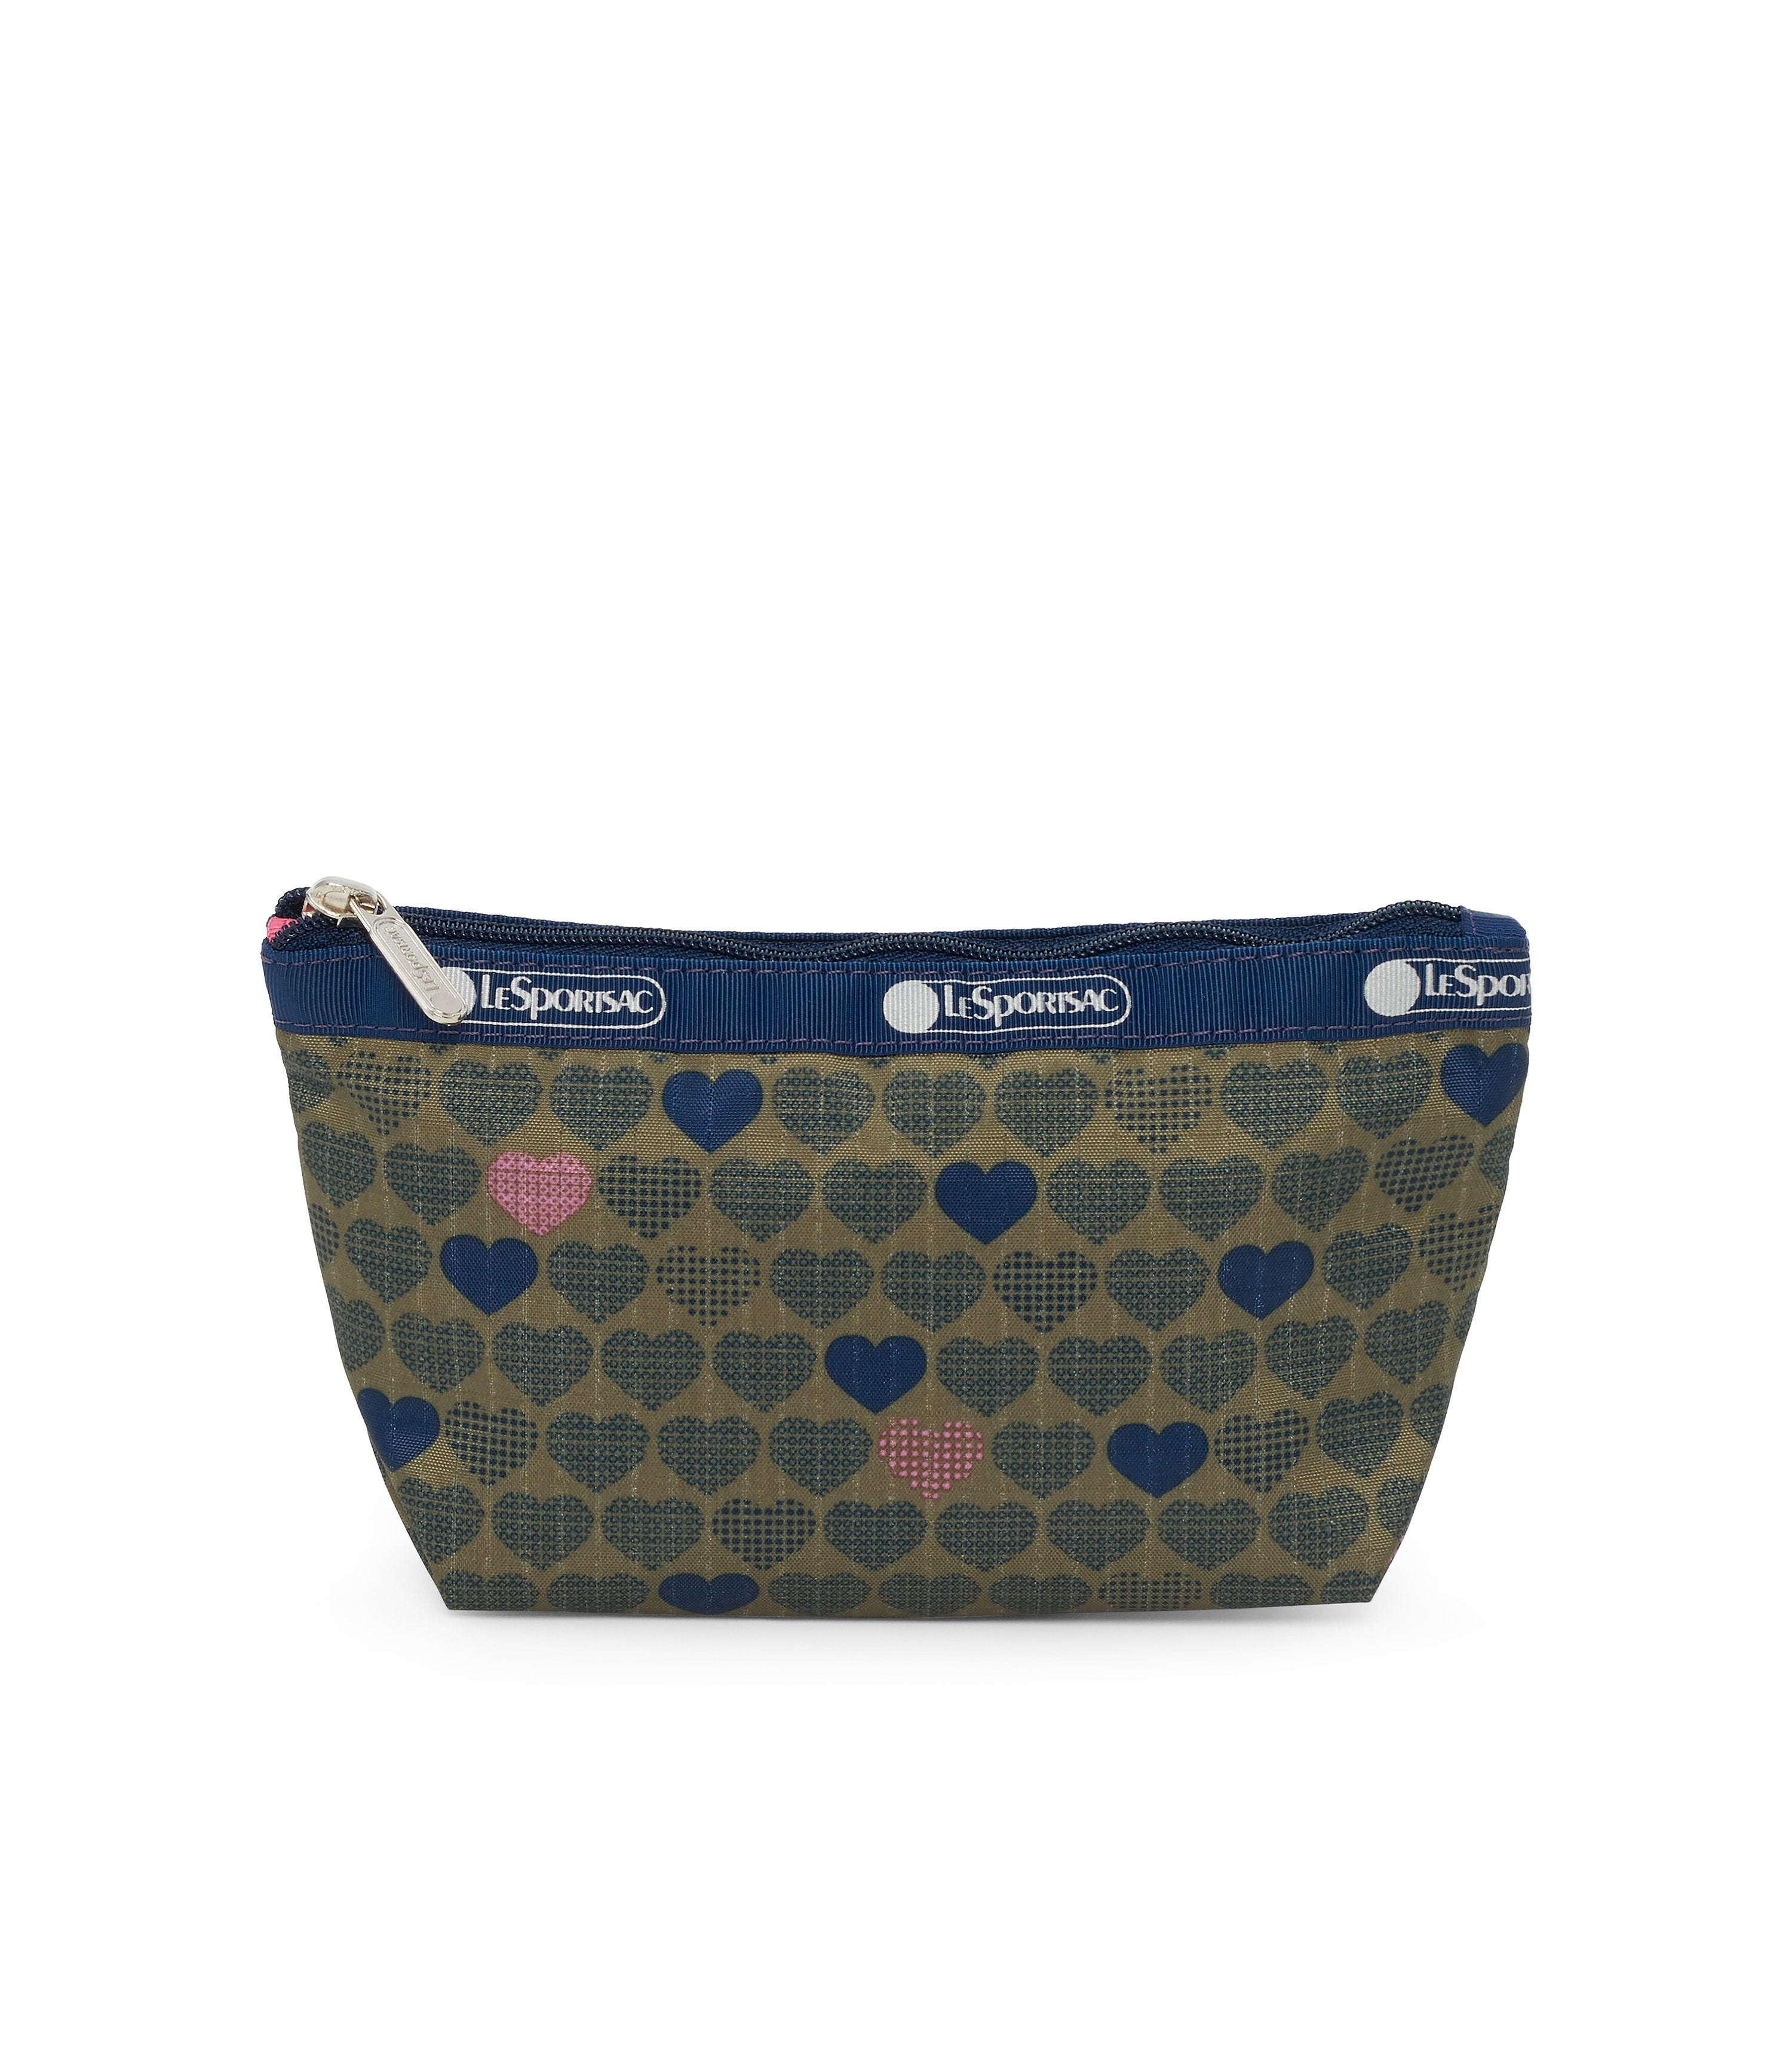 Small Sloan Cosmetic, Accessories and Cosmetic Bag, LeSportsac, Exclusive! Wait For Love print